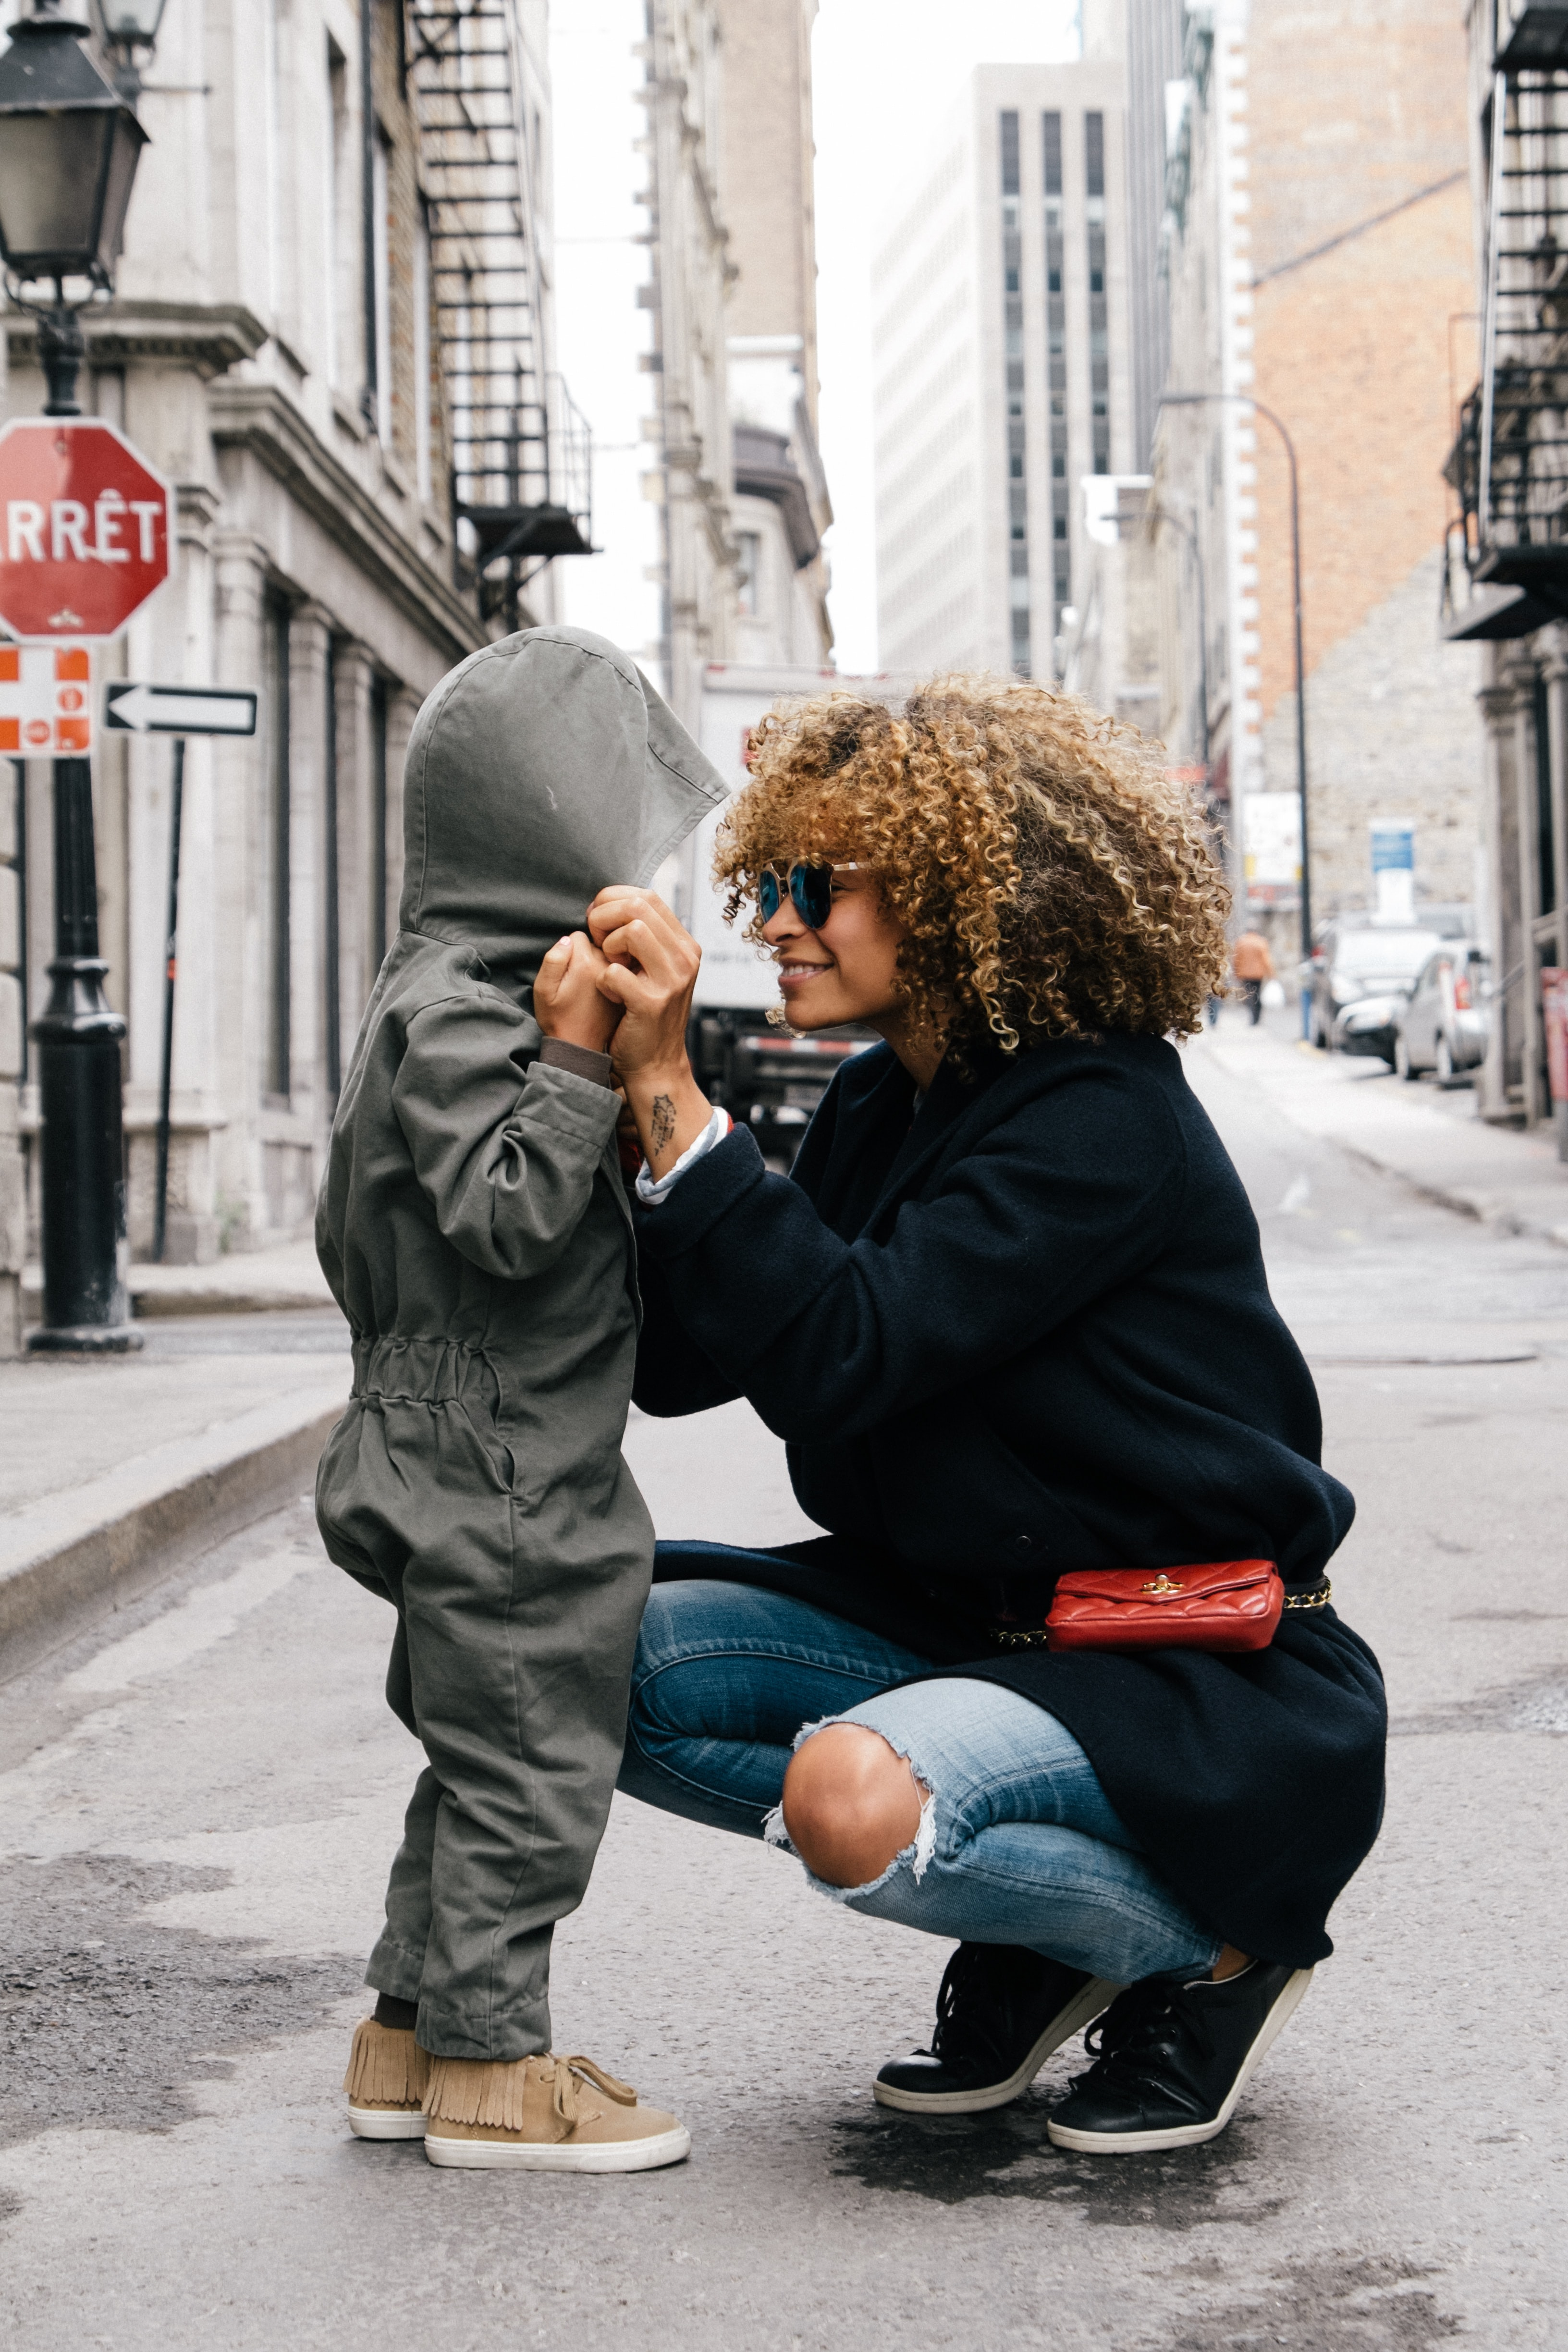 A mom with curly hair crouching in the street, Old Port of Montreal, smiling at her young child wearing an all in one outfit with the hood up